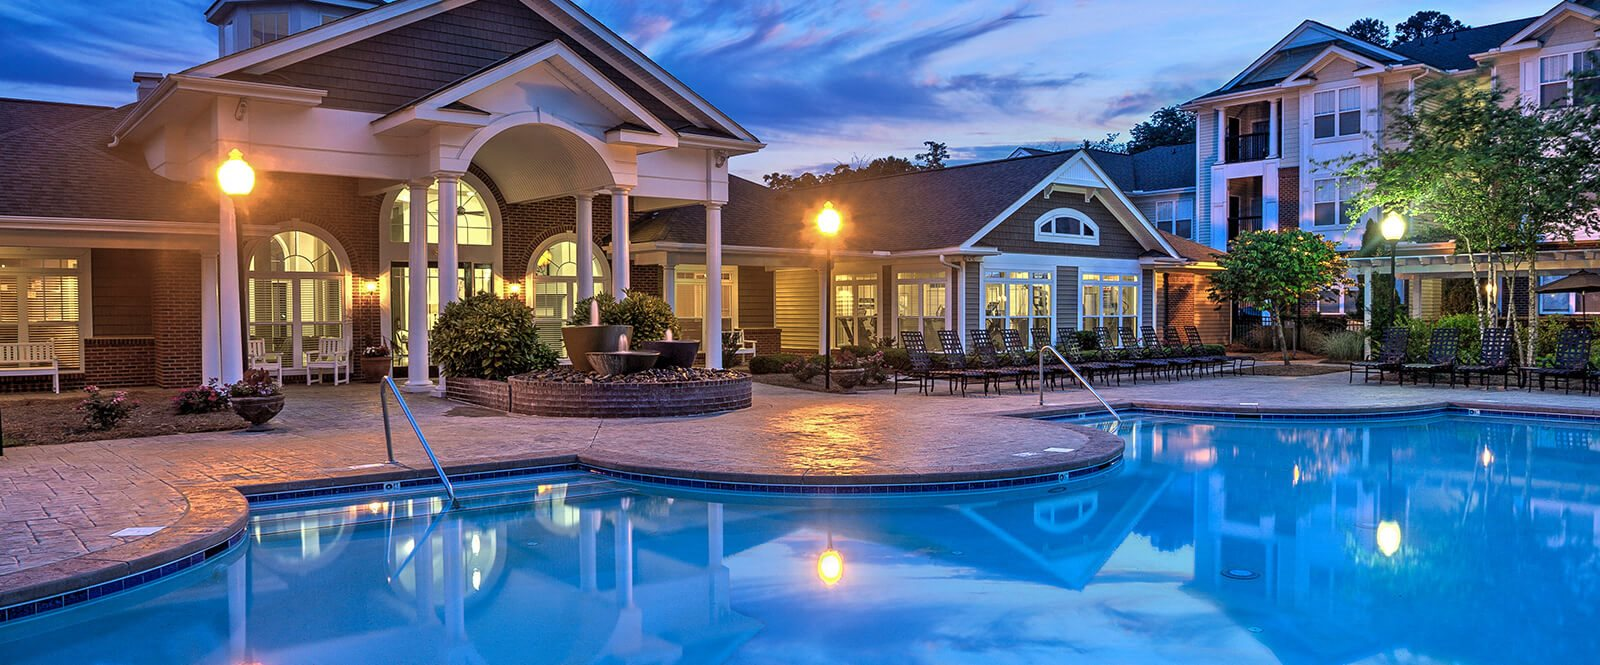 Great pool views from many of their apartments at Abberly Woods Apartment Homes by HHHunt, North Carolina, 28216